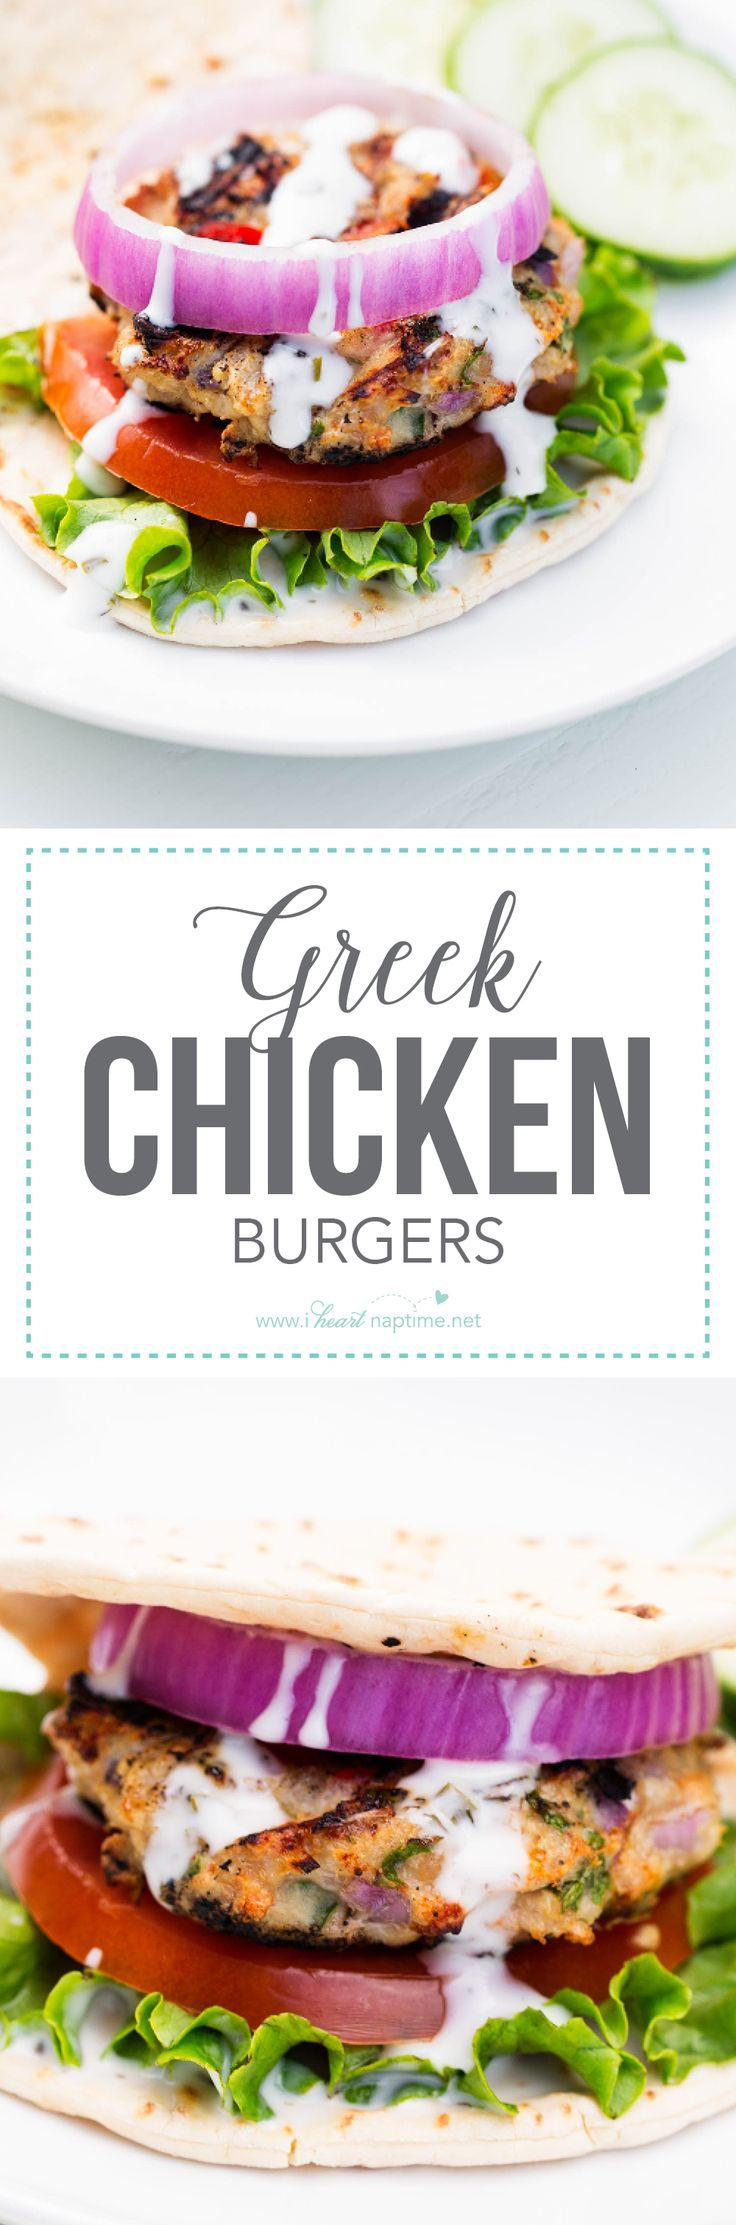 Grilled Greek Chicken Burgers... done in 20 minutes and a new family favorite recipe!